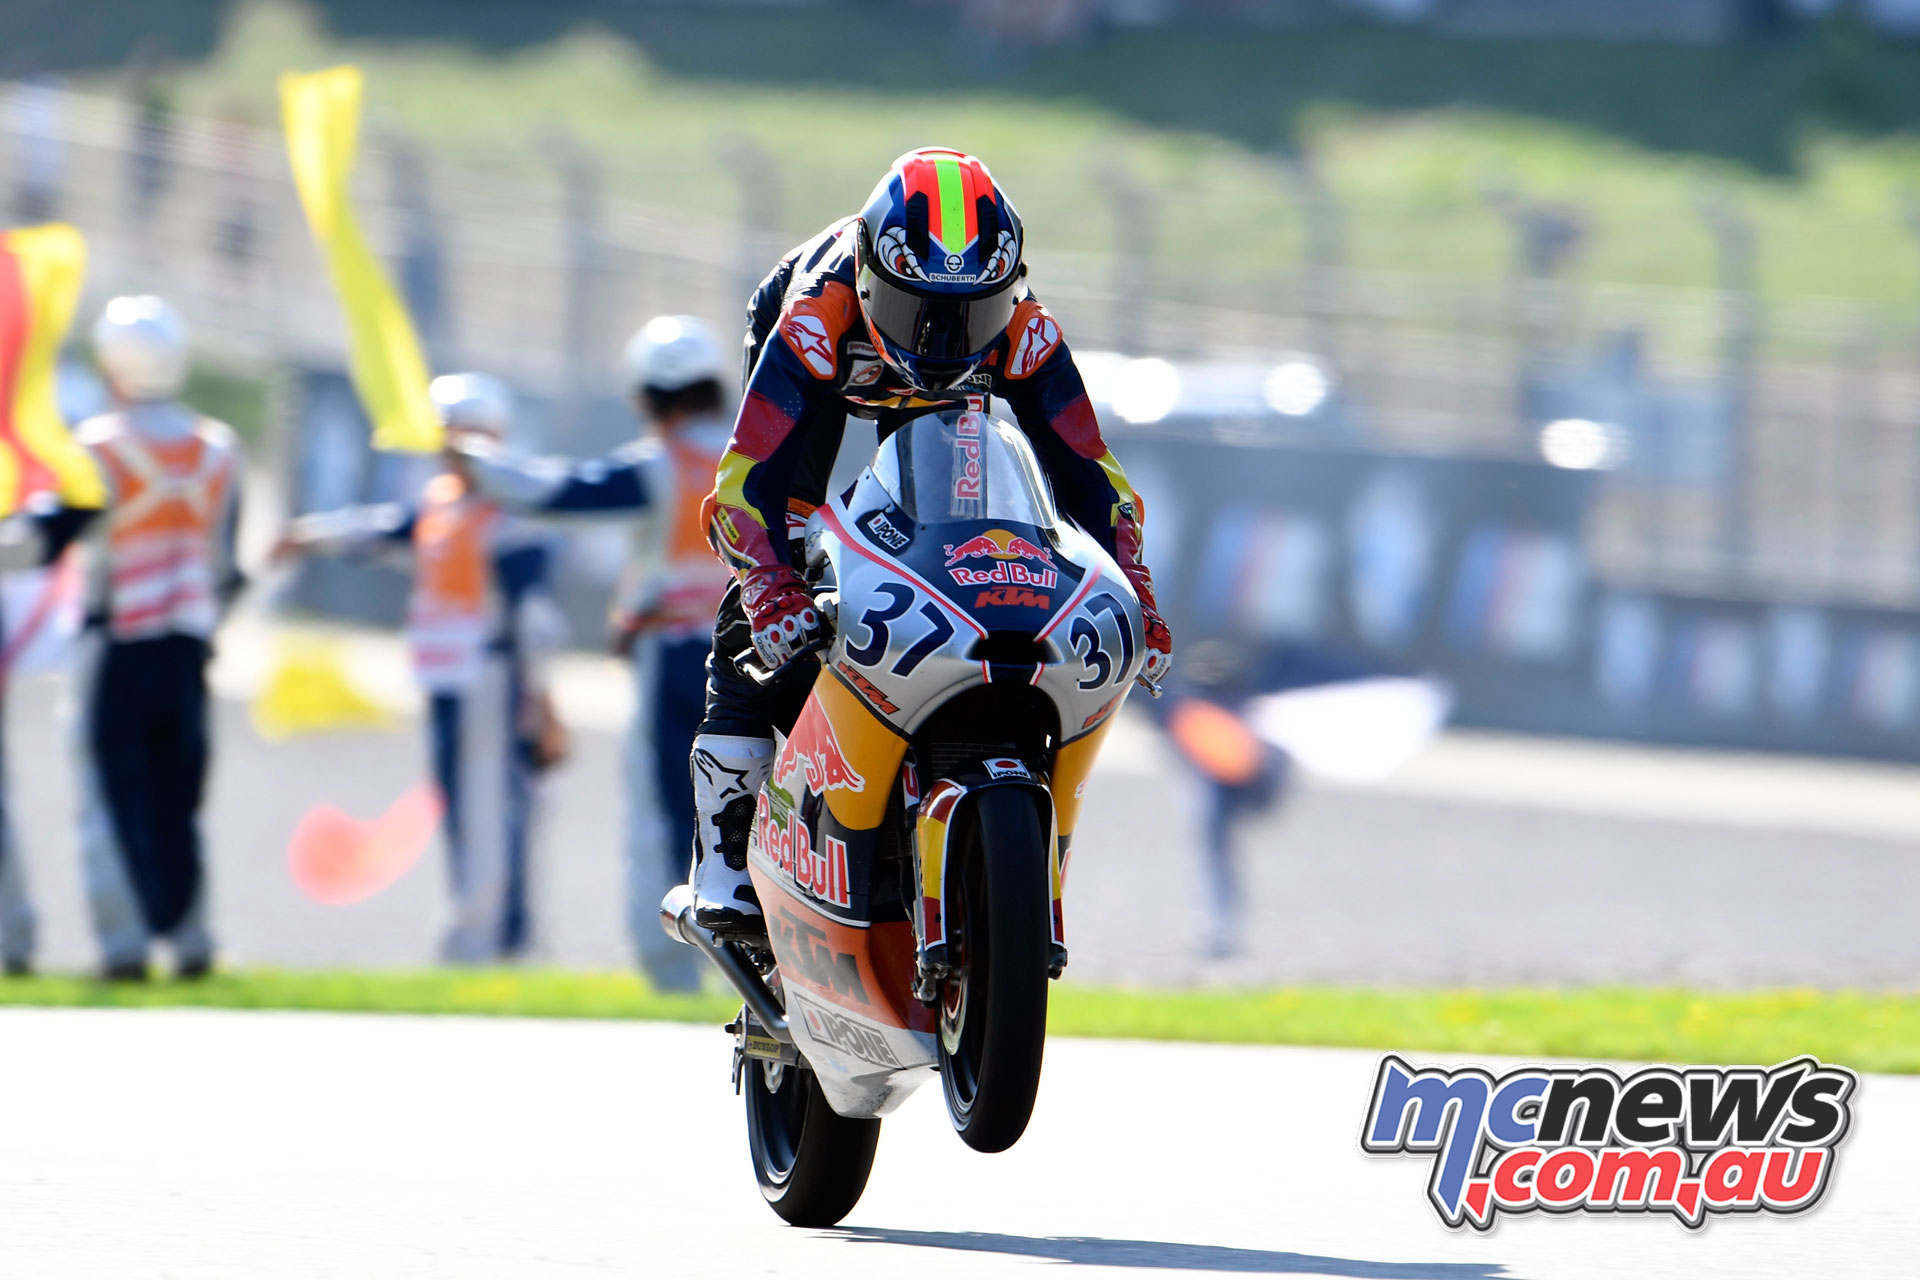 Red Bull Rookies Cup Rnd Austria Pedro Acosta